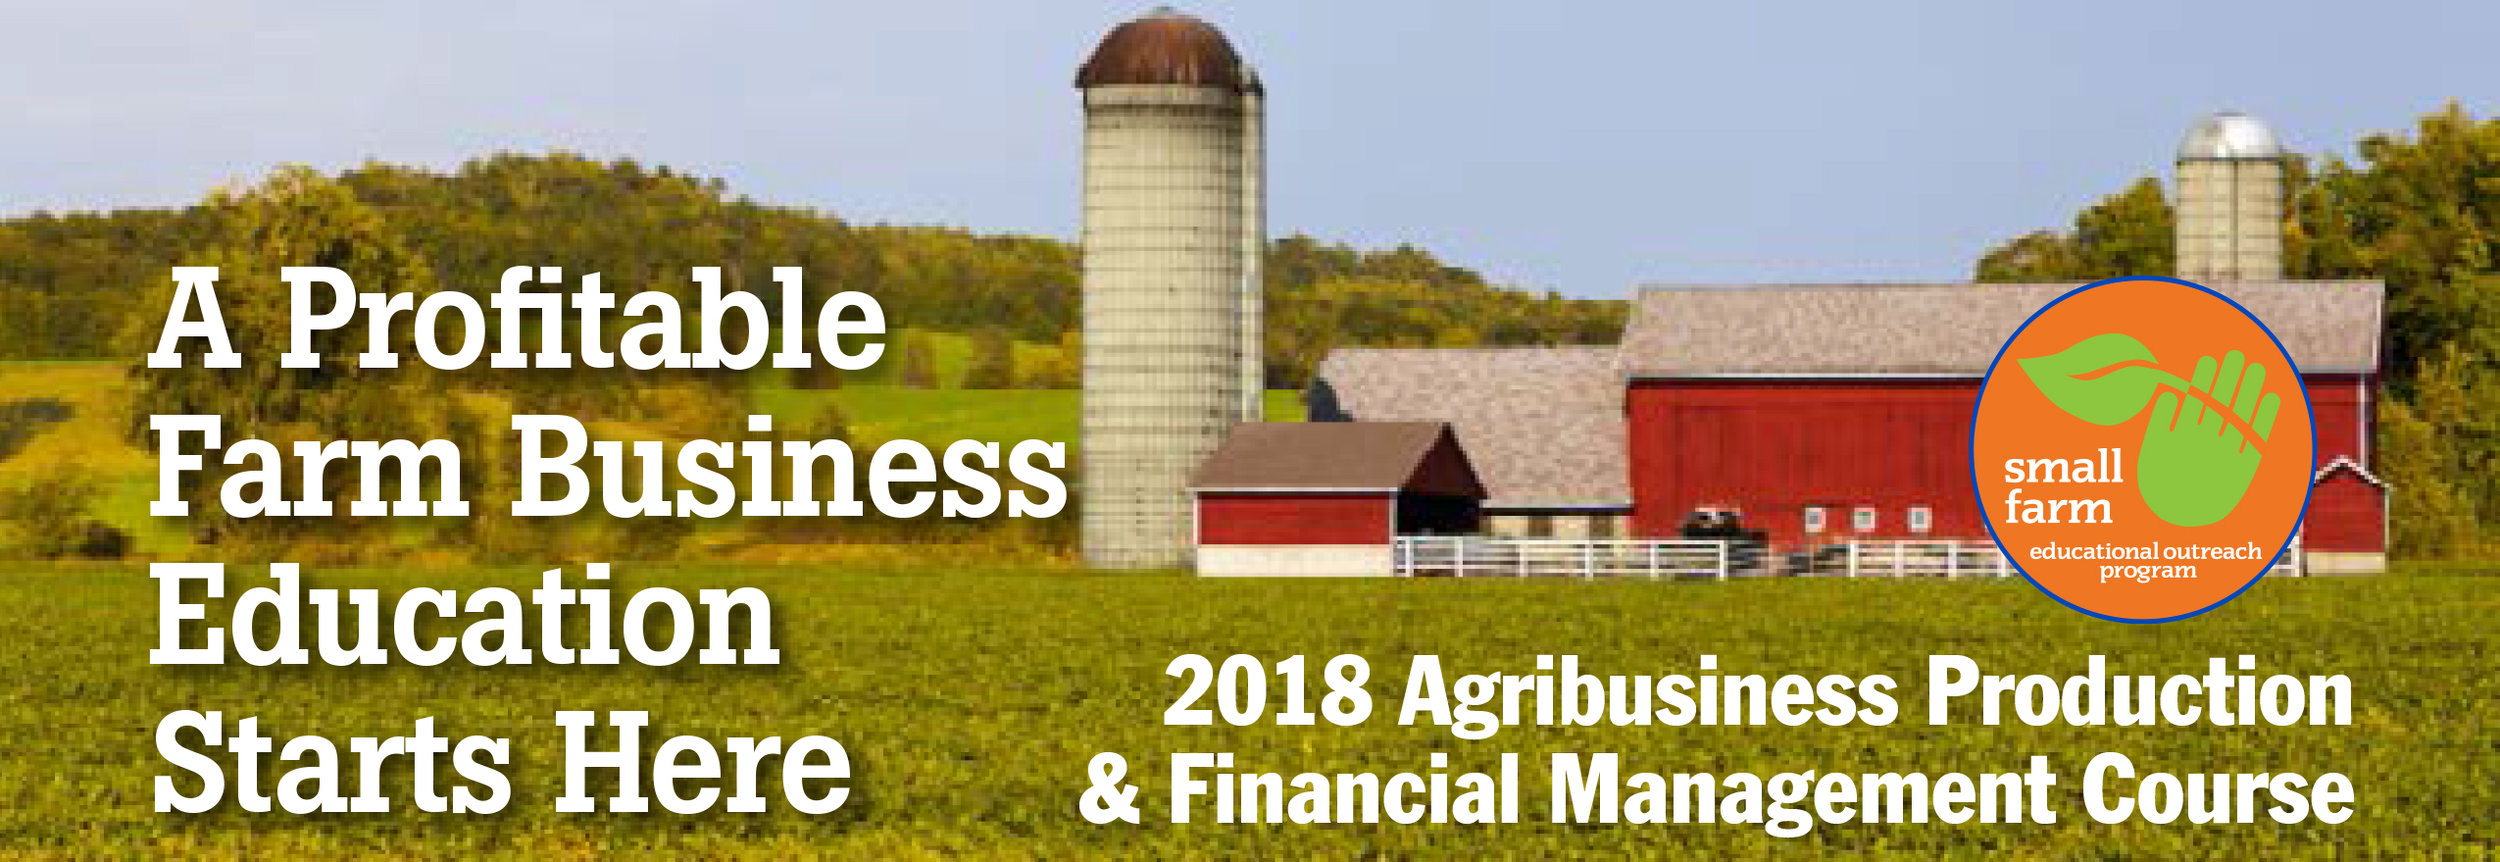 Agribusiness_Mar16_banner.jpg